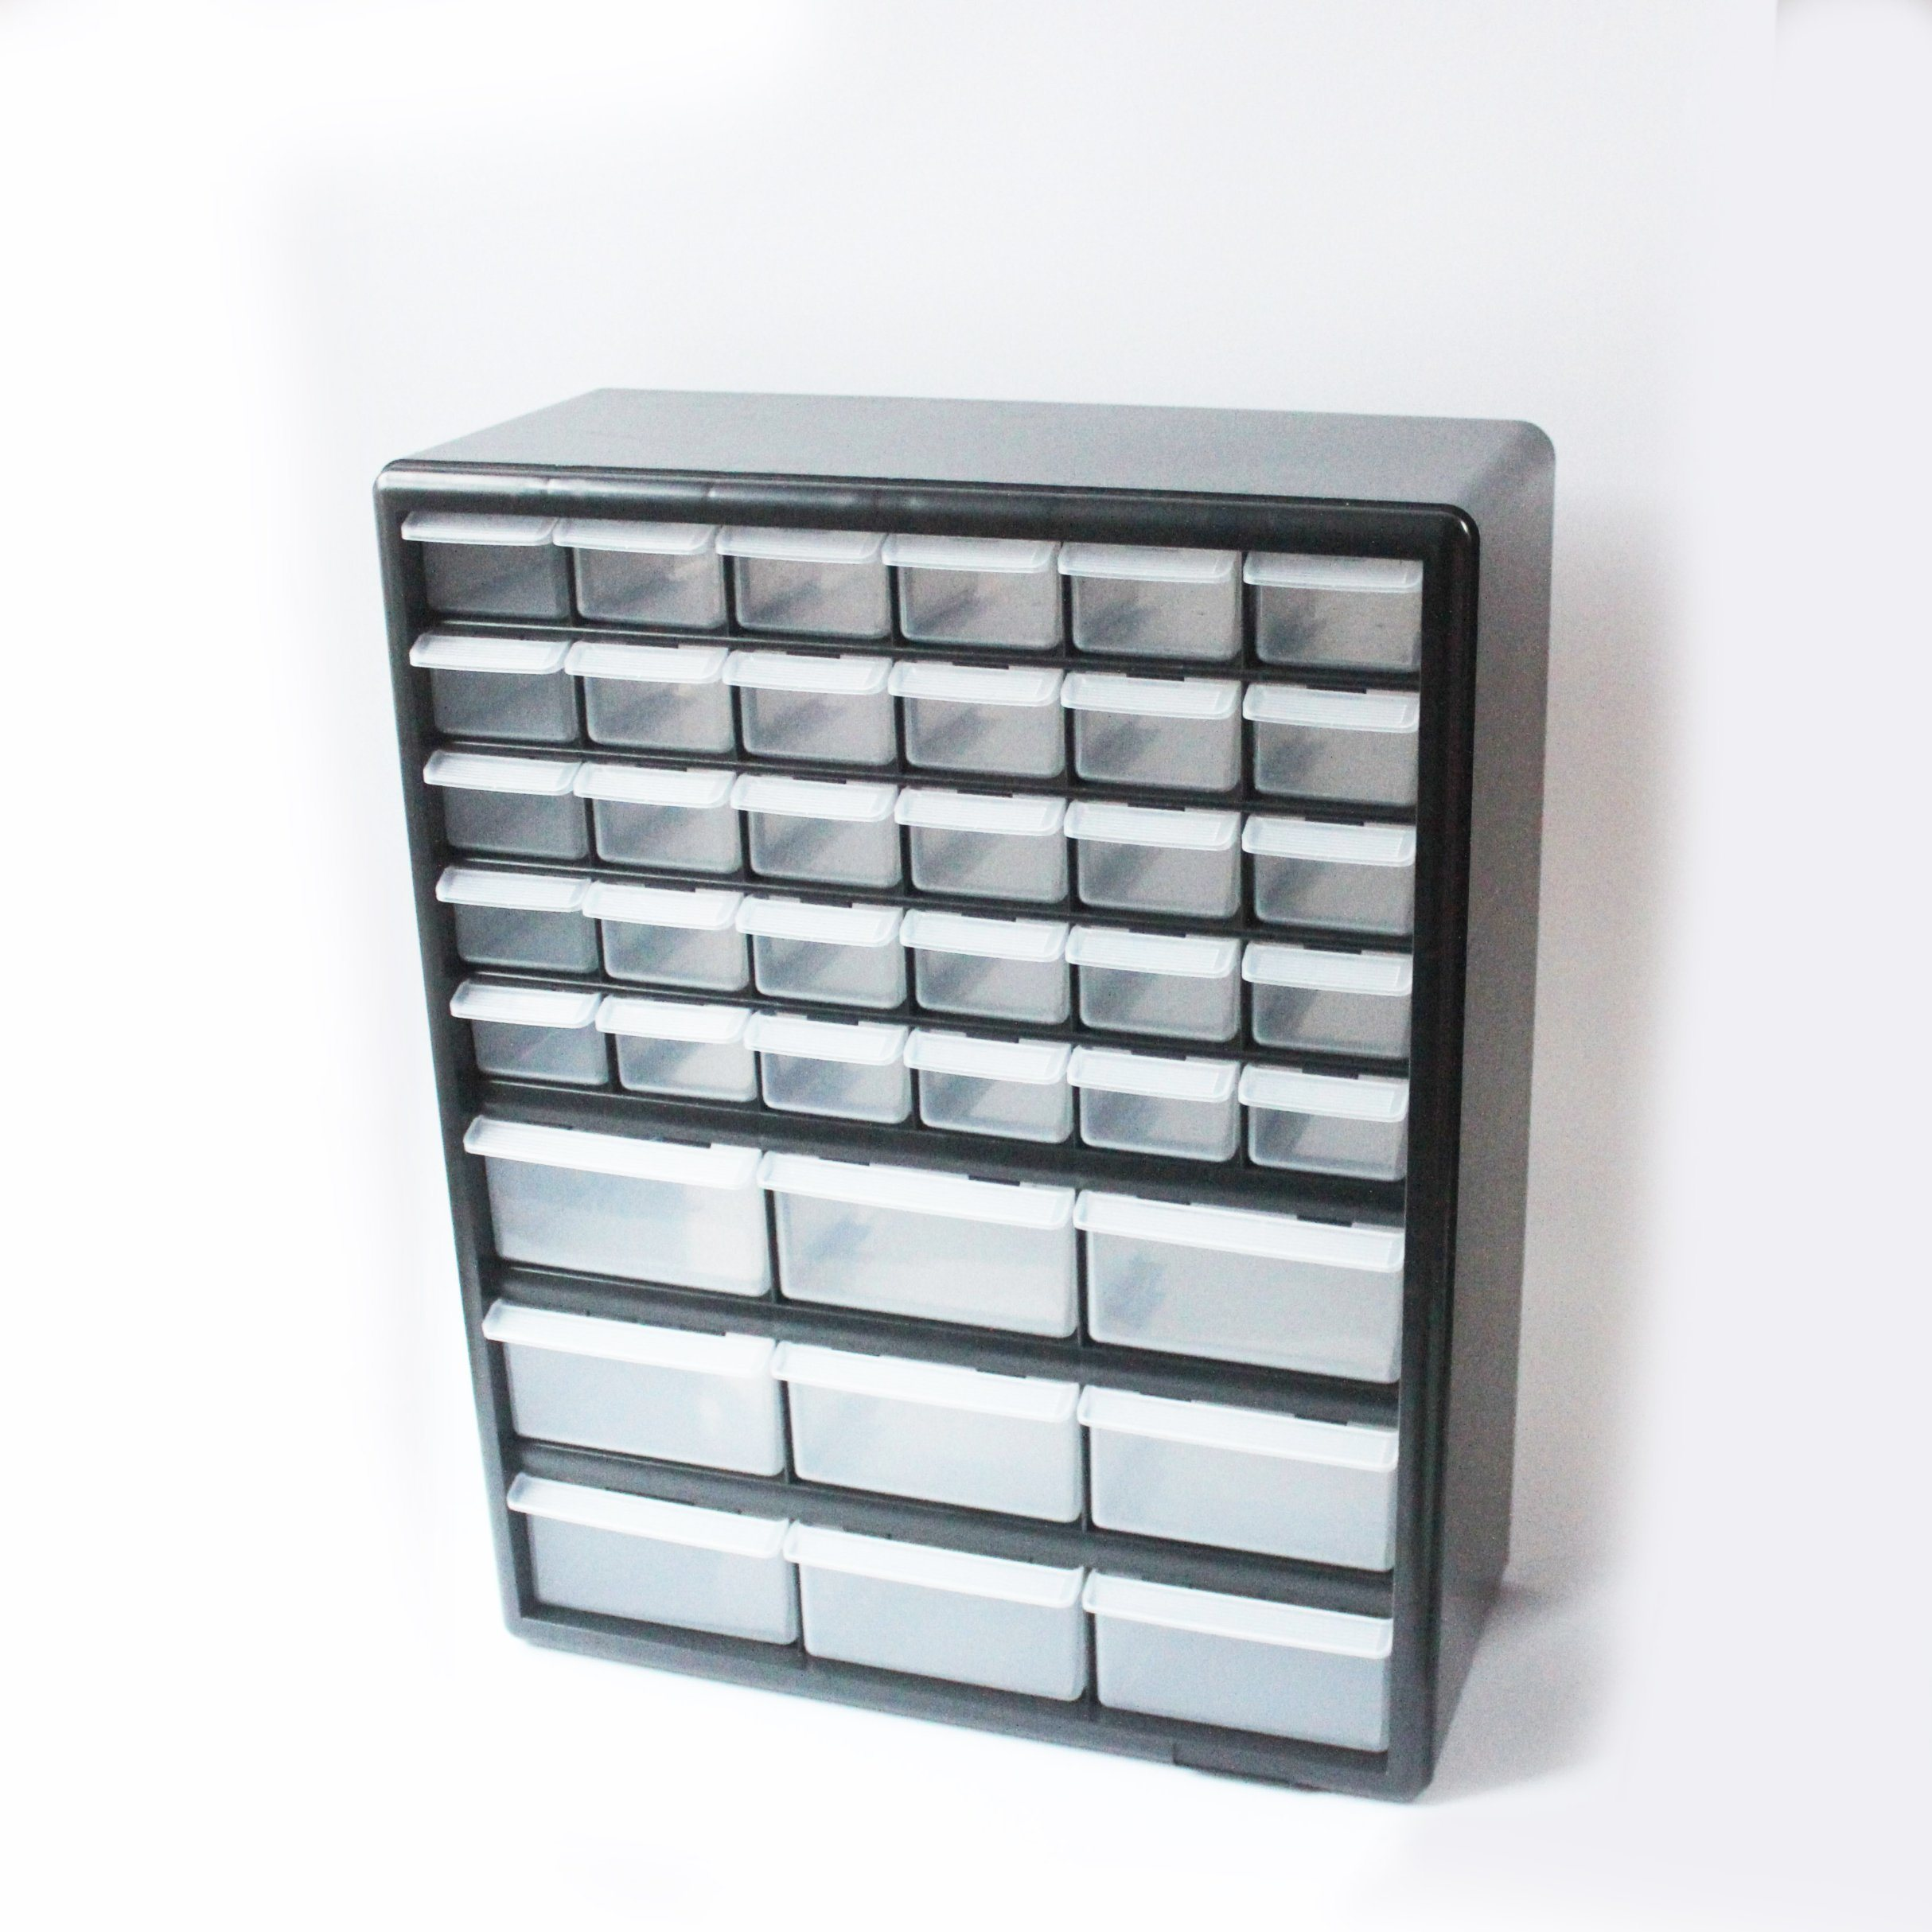 kitchen tray organizer storage in drawer solutions steel inserts drawers mg cutlery lummy gwjlsd stainless metal